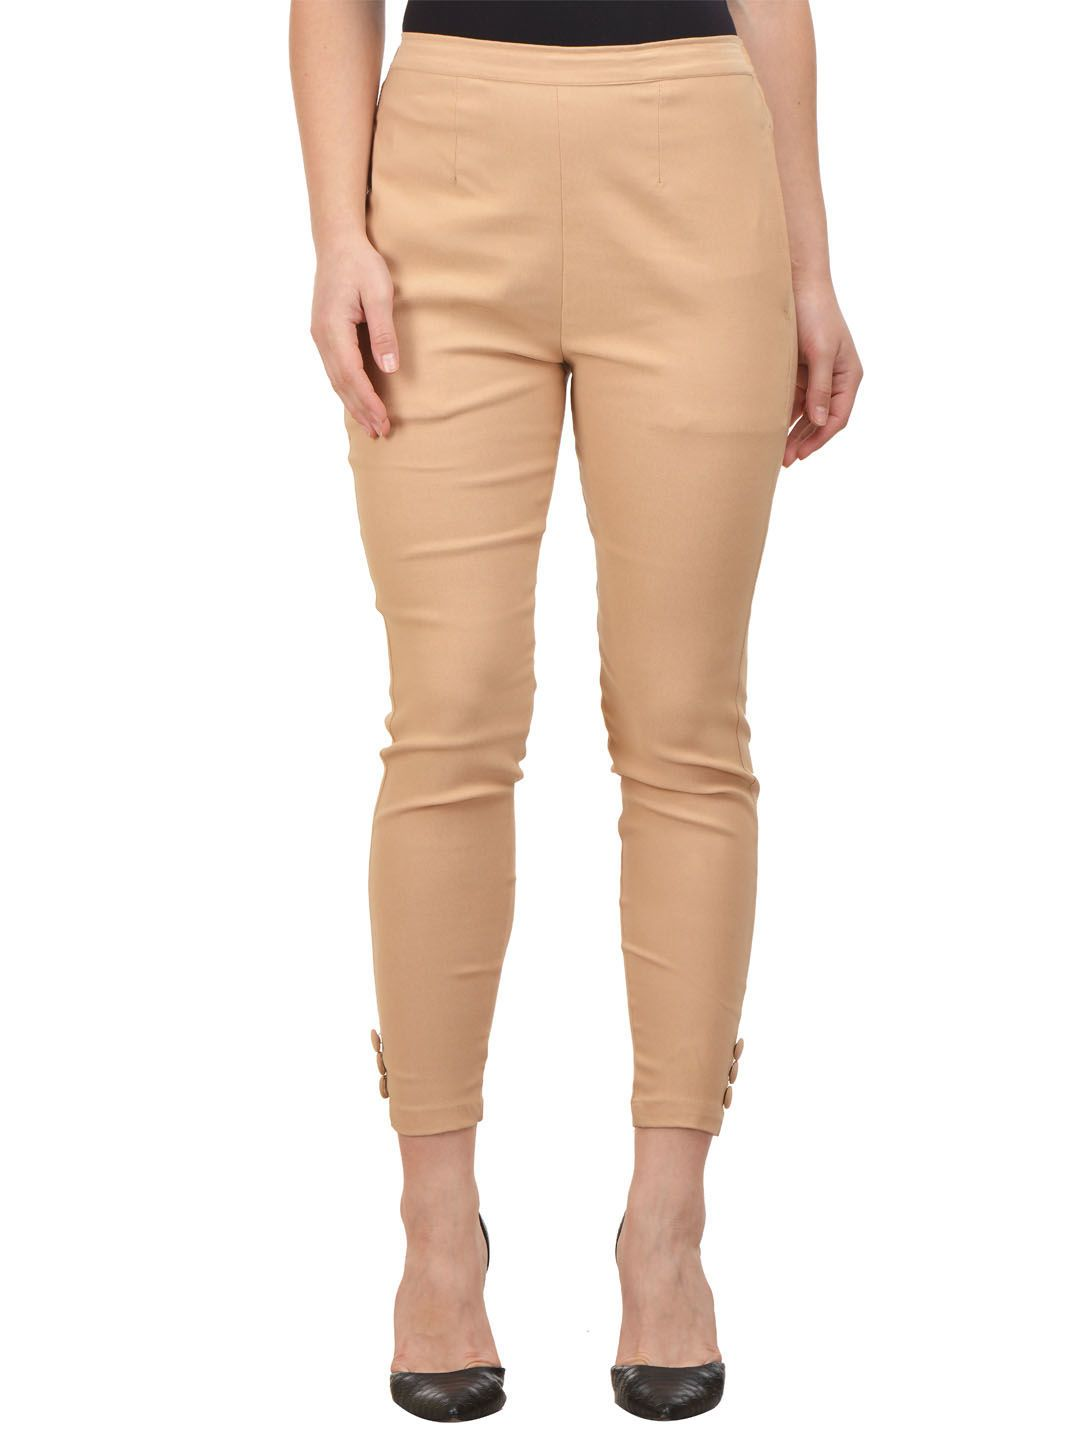 70380469f3849 ... Pants/Trousers by Castle Lifestyle. This pair of Fawn coloured Pencil  Pant will go well with your sexy extra long shirts